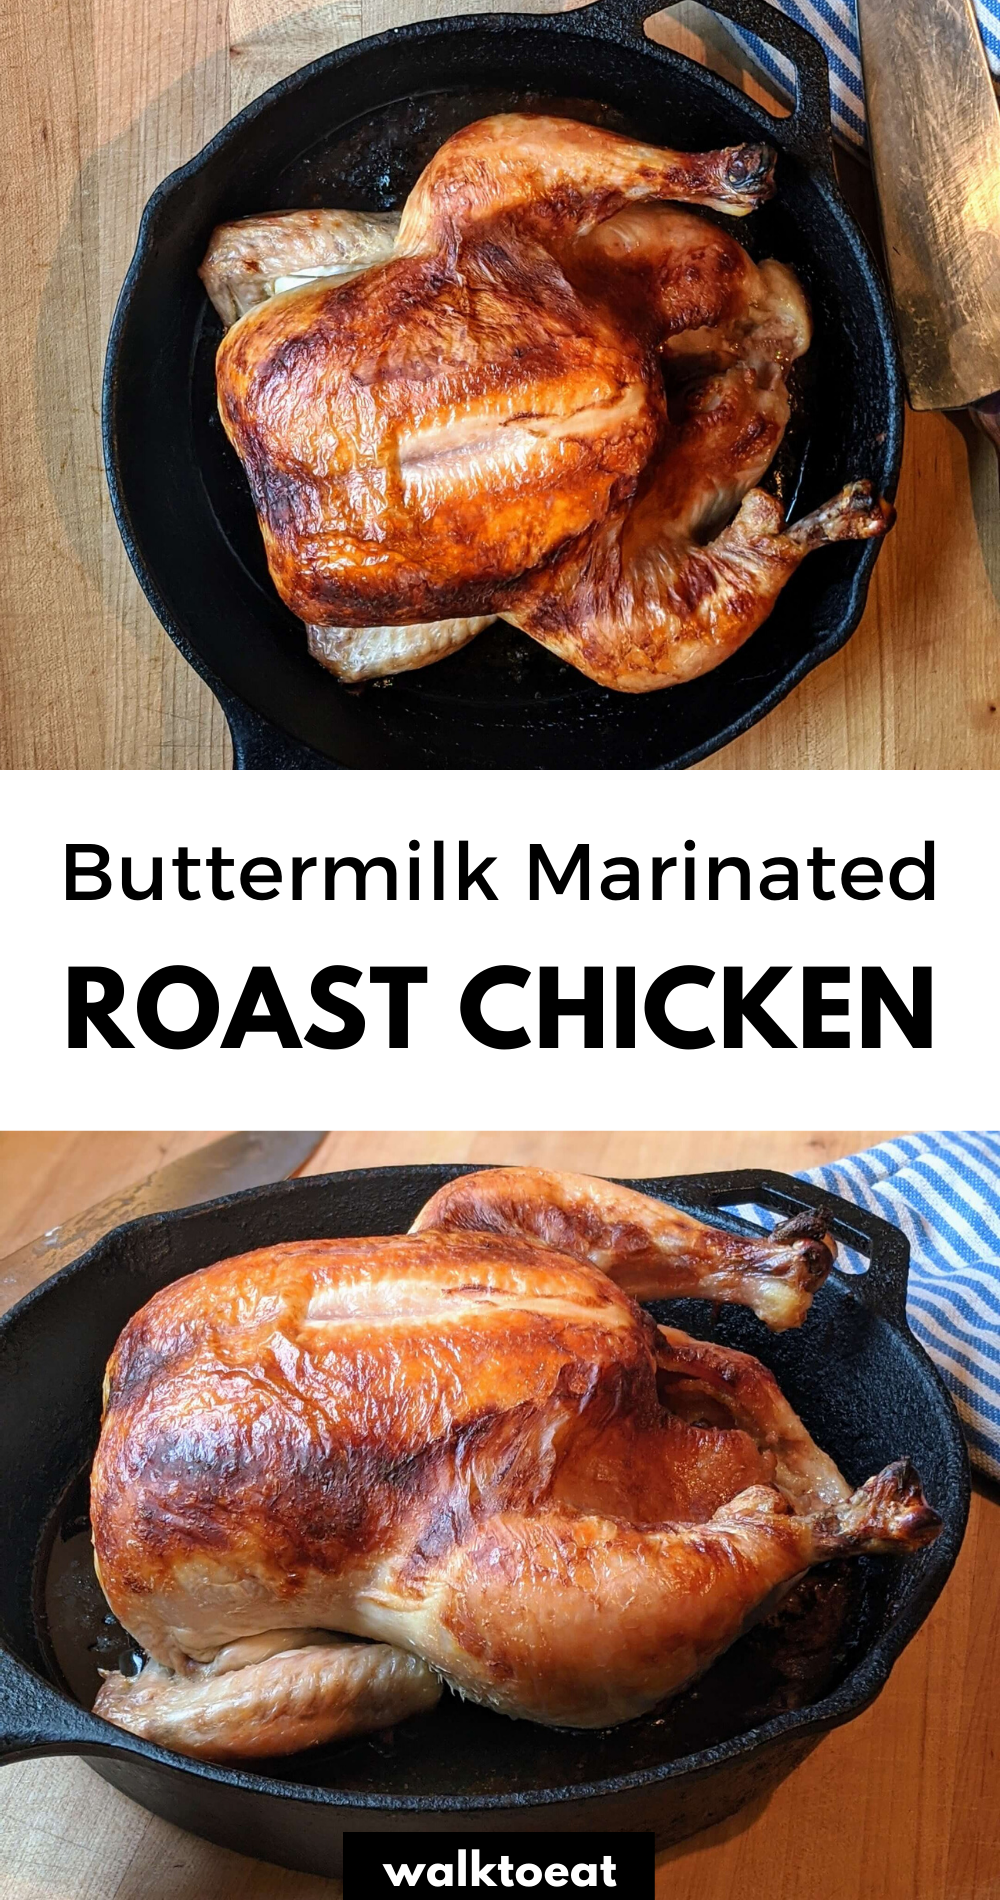 Buttermilk Marinated Roast Chicken In 2020 Batch Cooking Recipes Chicken Recipes Poultry Recipes